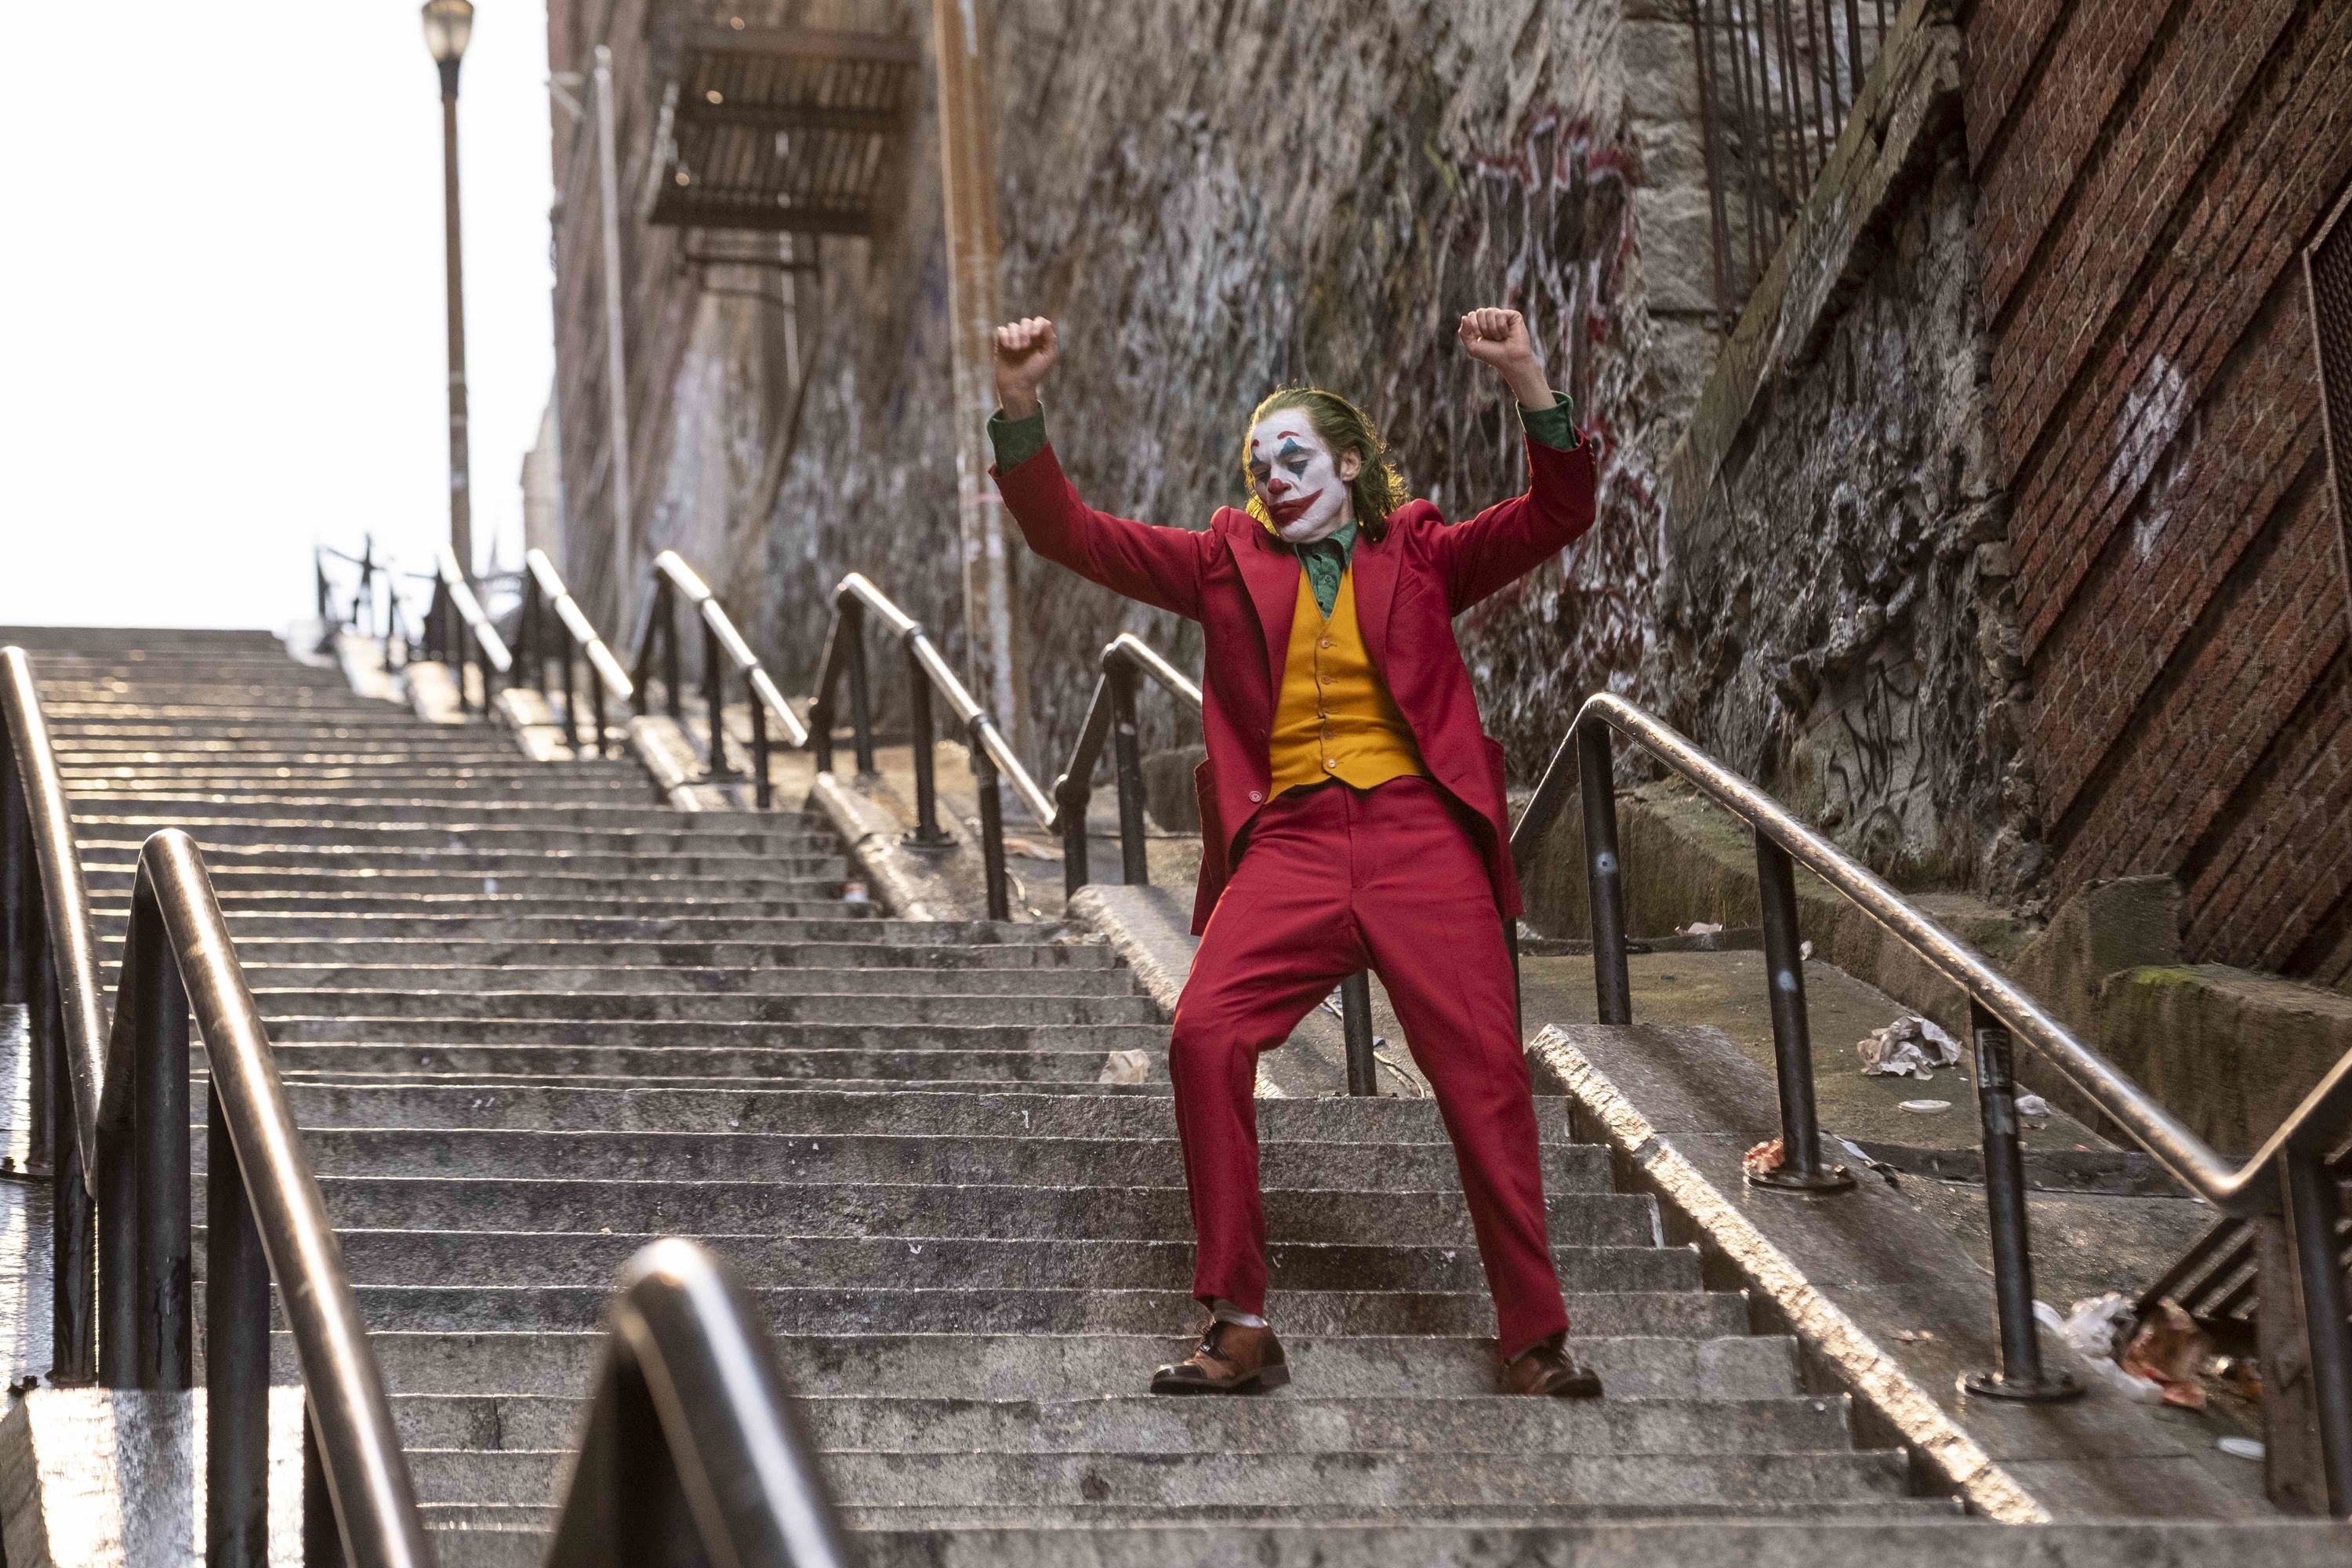 Joker fans, here's where you can go dance on those steps in the movie